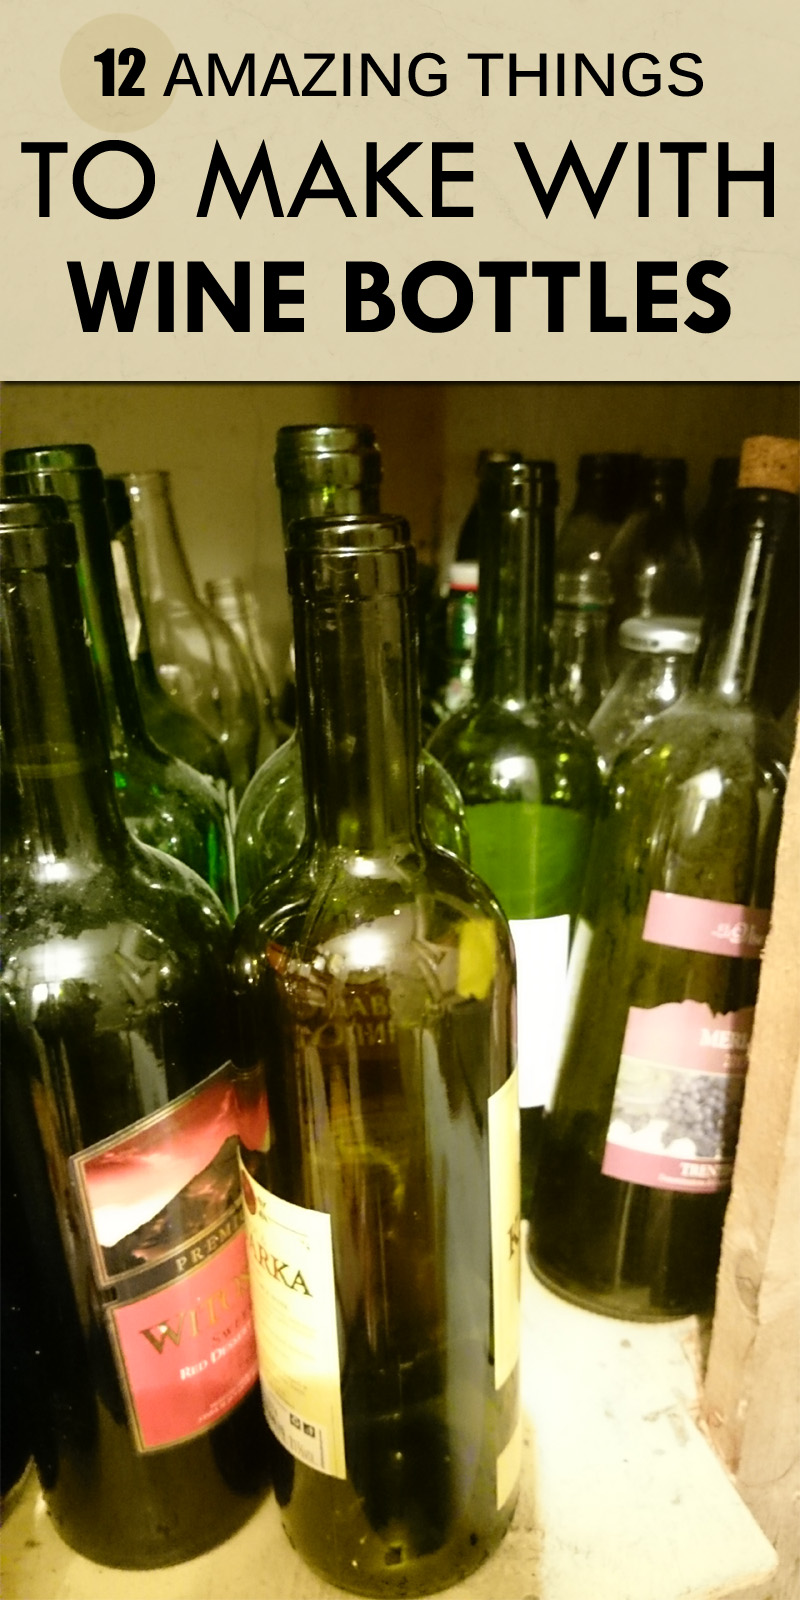 12 Amazing Things To Make With Wine Bottles